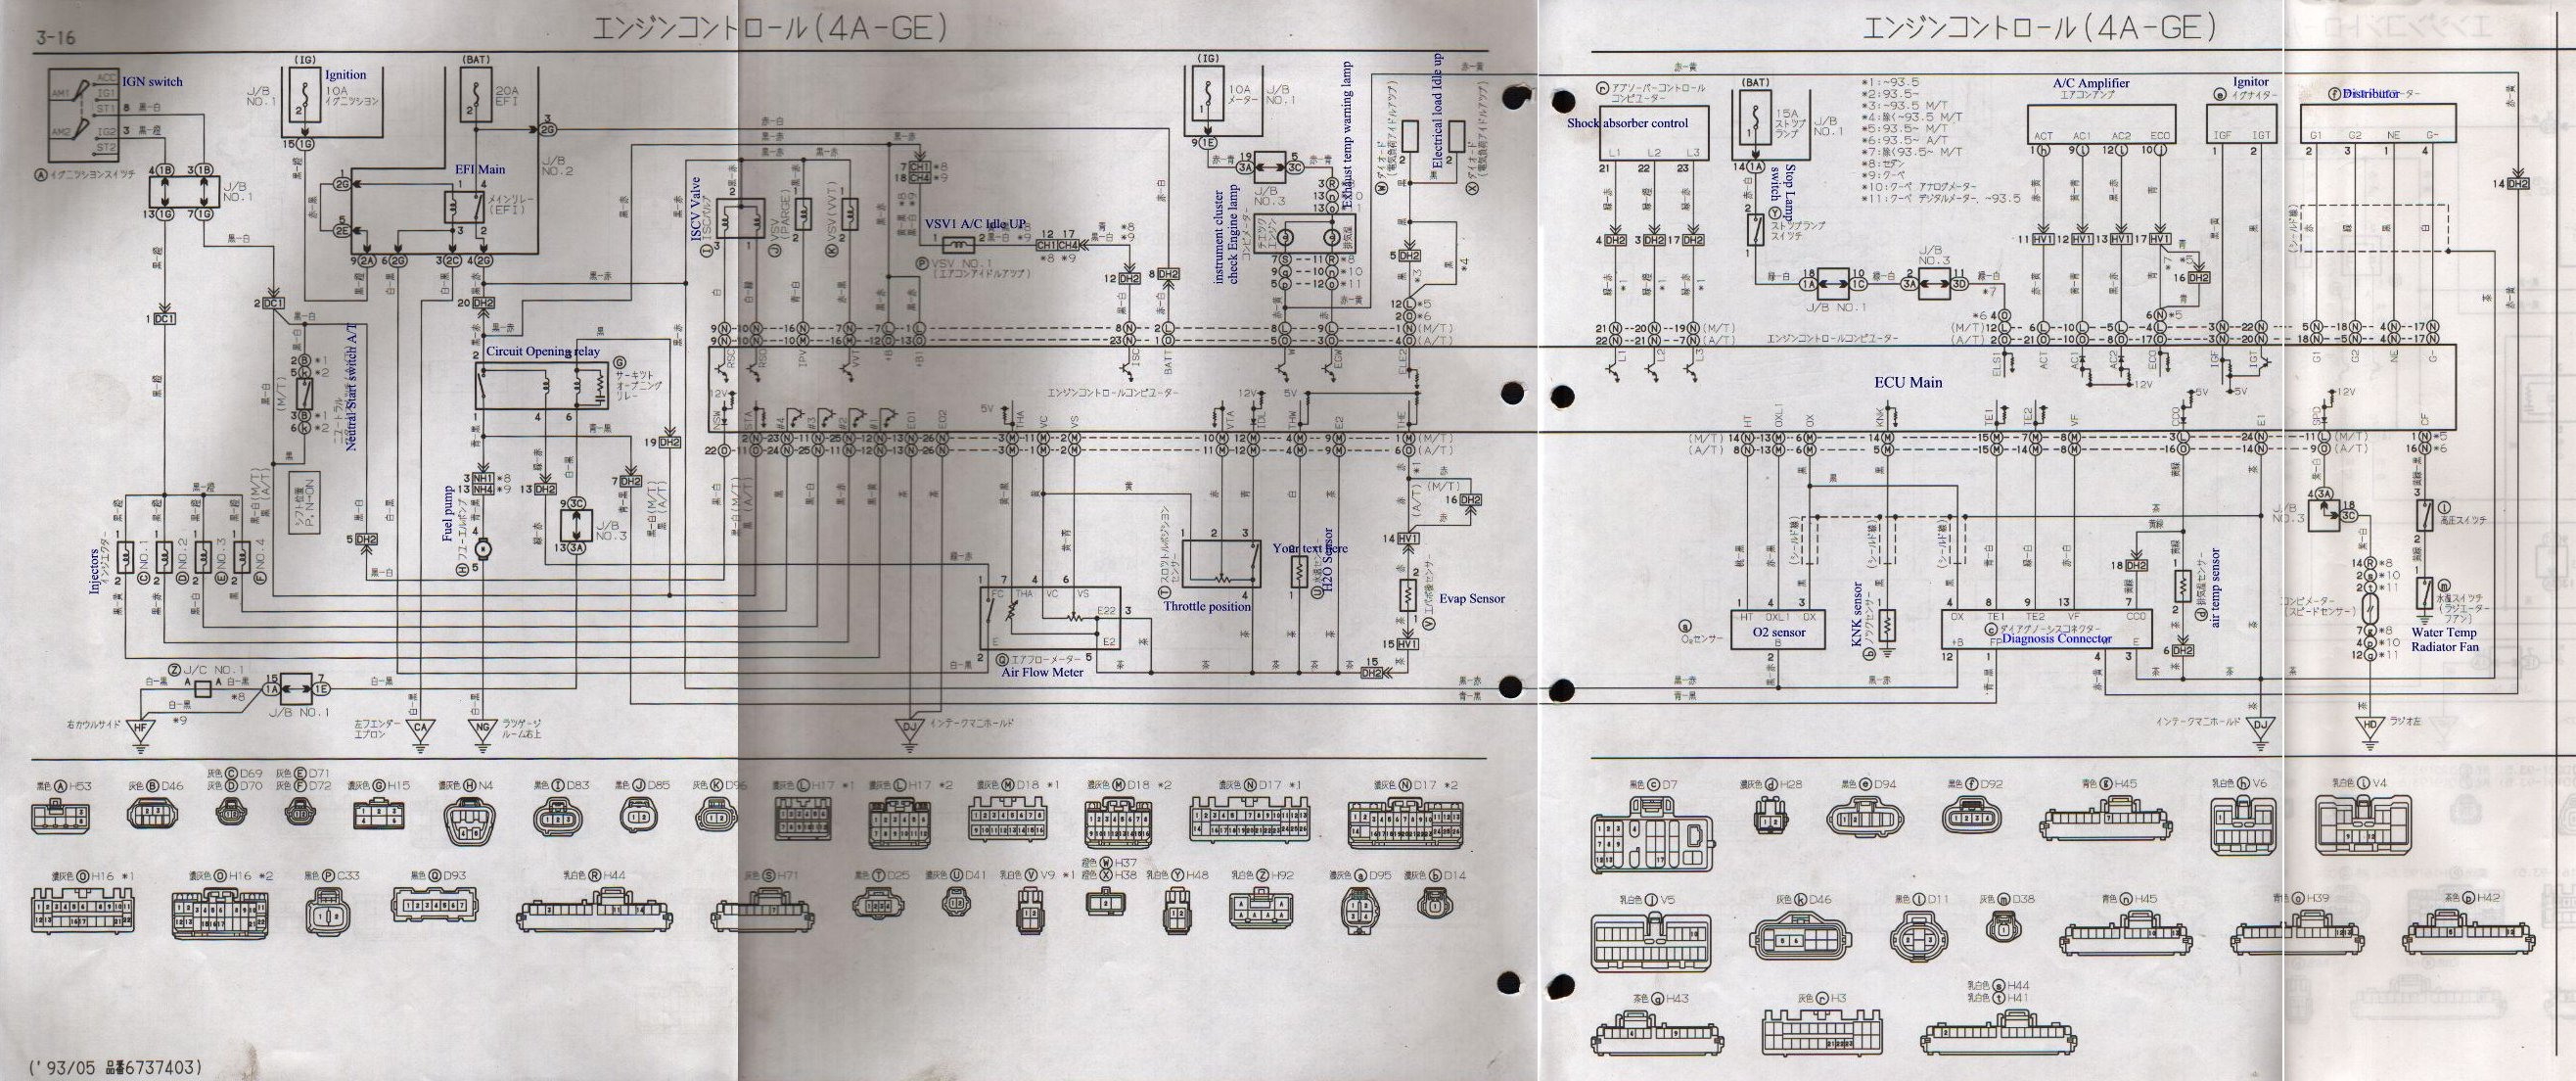 silvertop_diagram wiring harness 4age 20v swap toyota mr2 graysgarage ca at 4agze wiring harness at creativeand.co